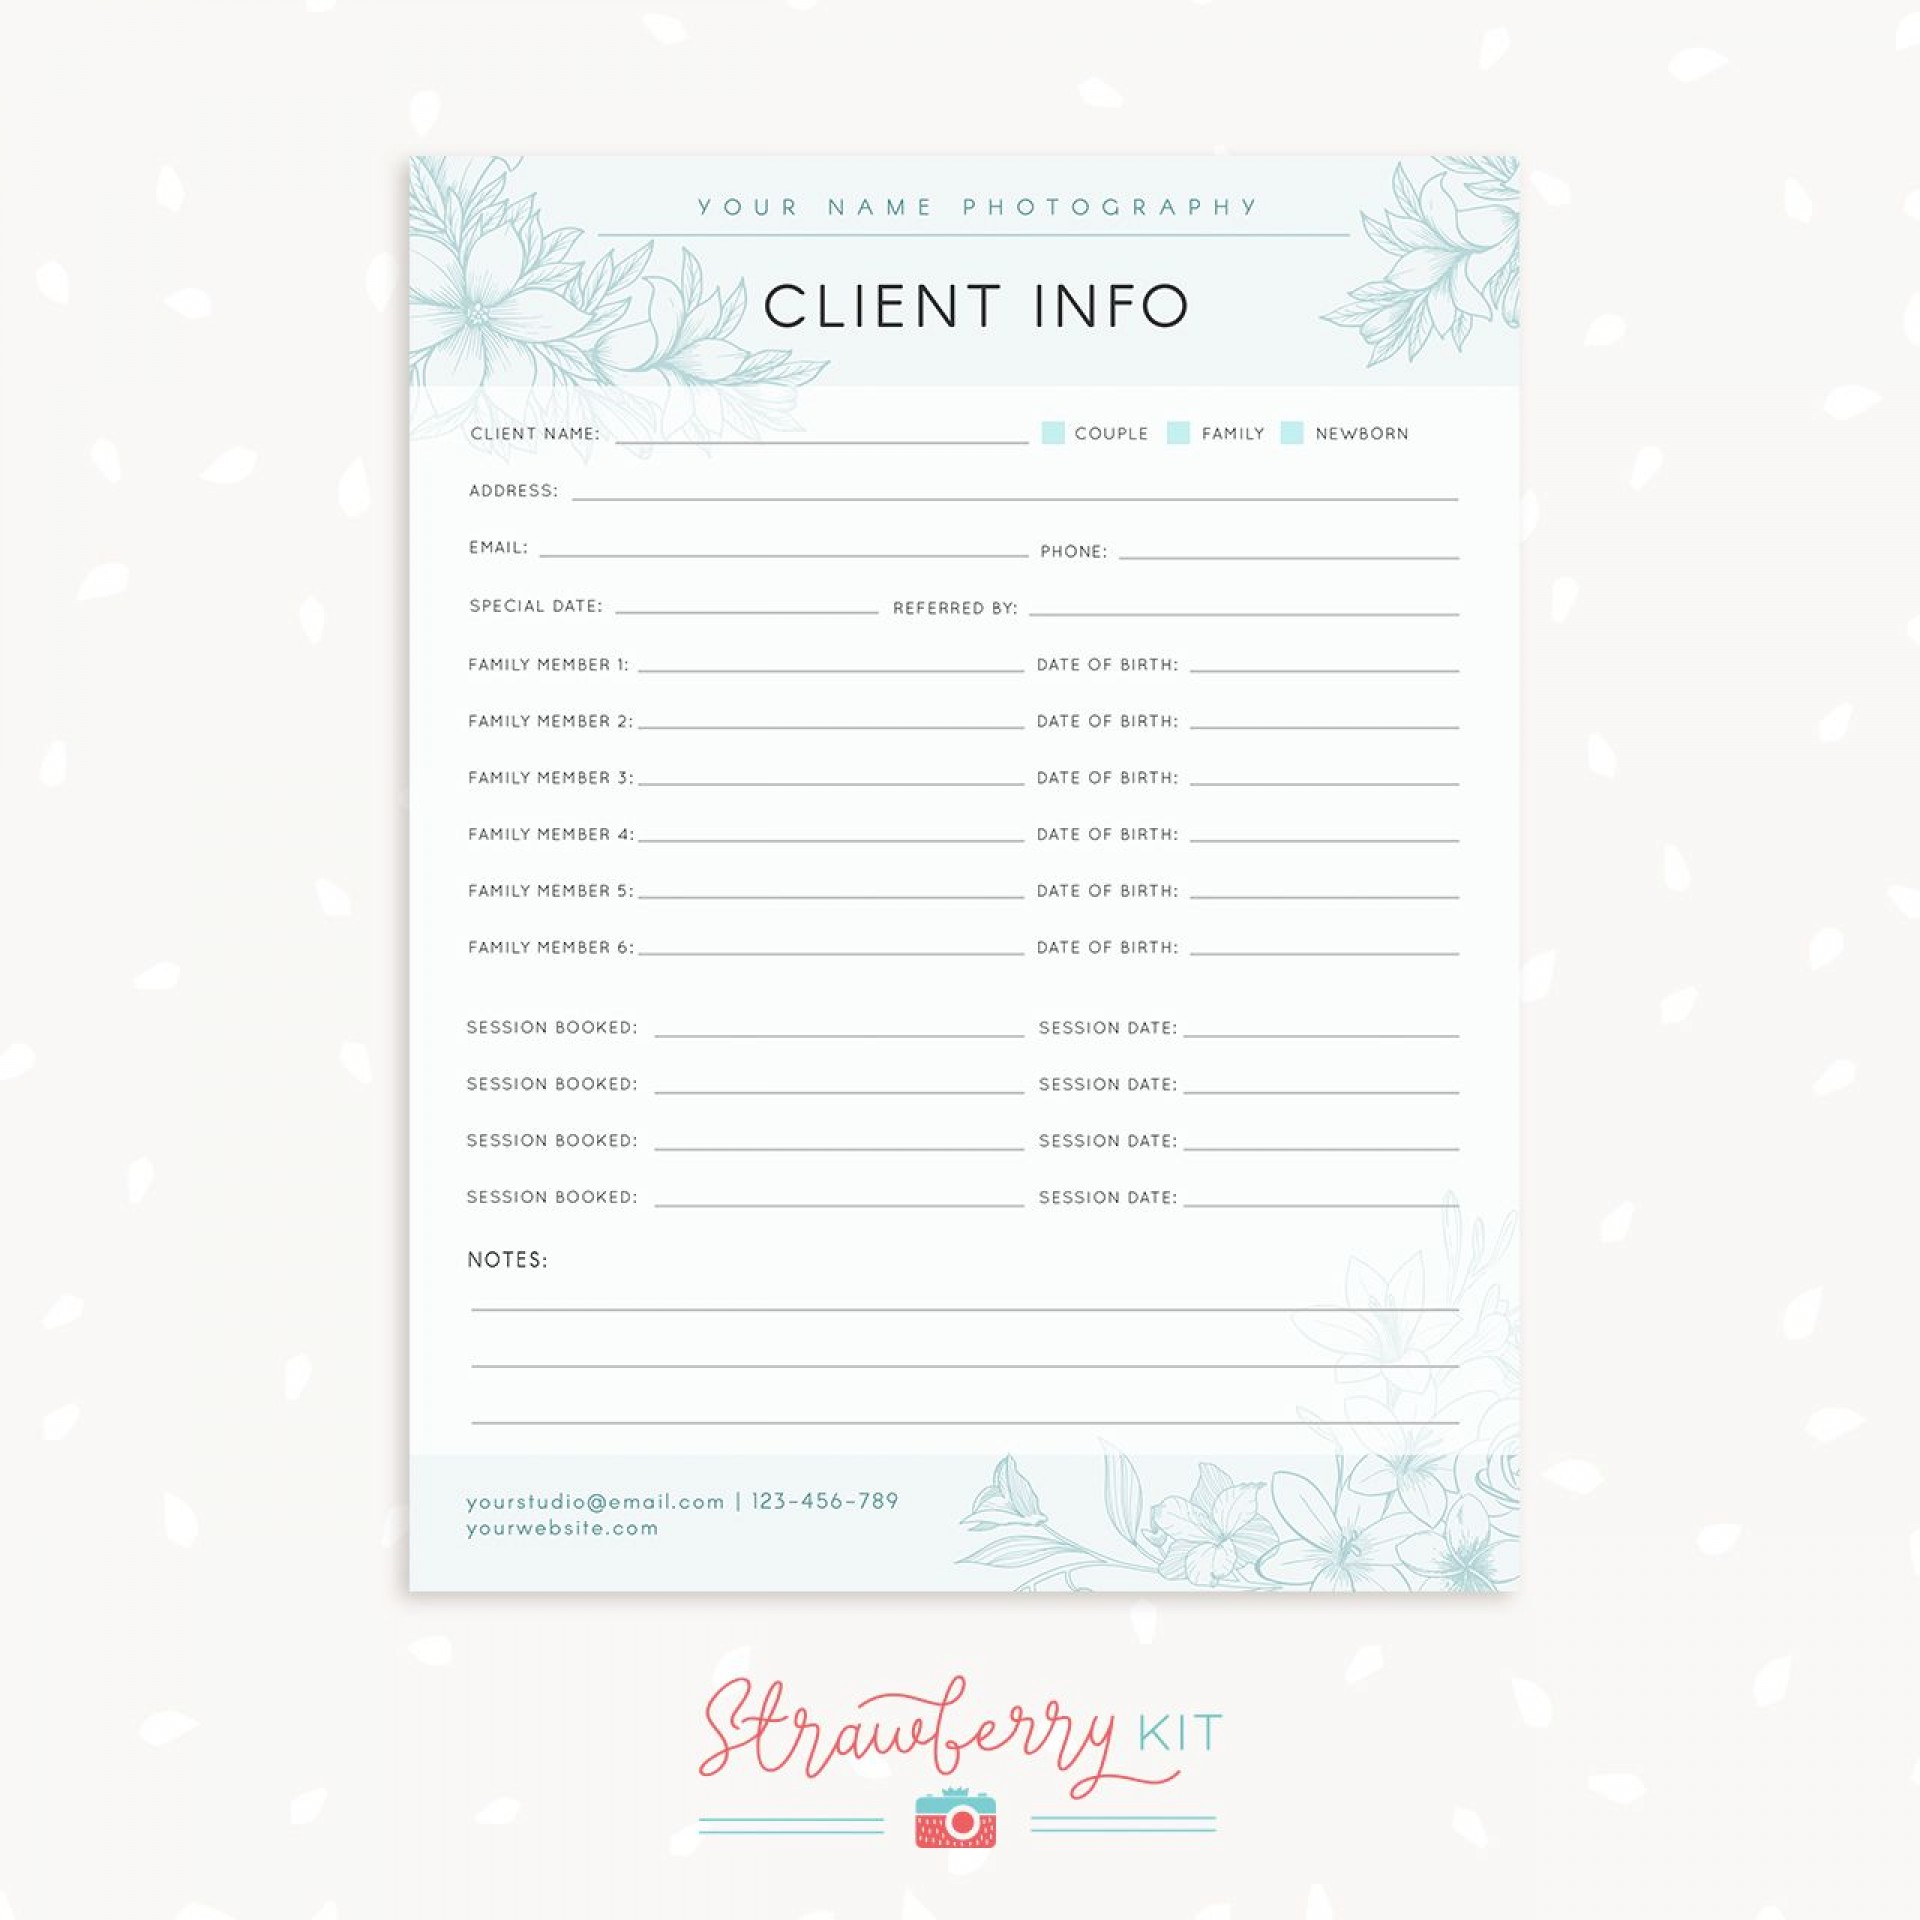 005 Imposing Client Info Form Template Highest Clarity  Free Photography Information Download1920